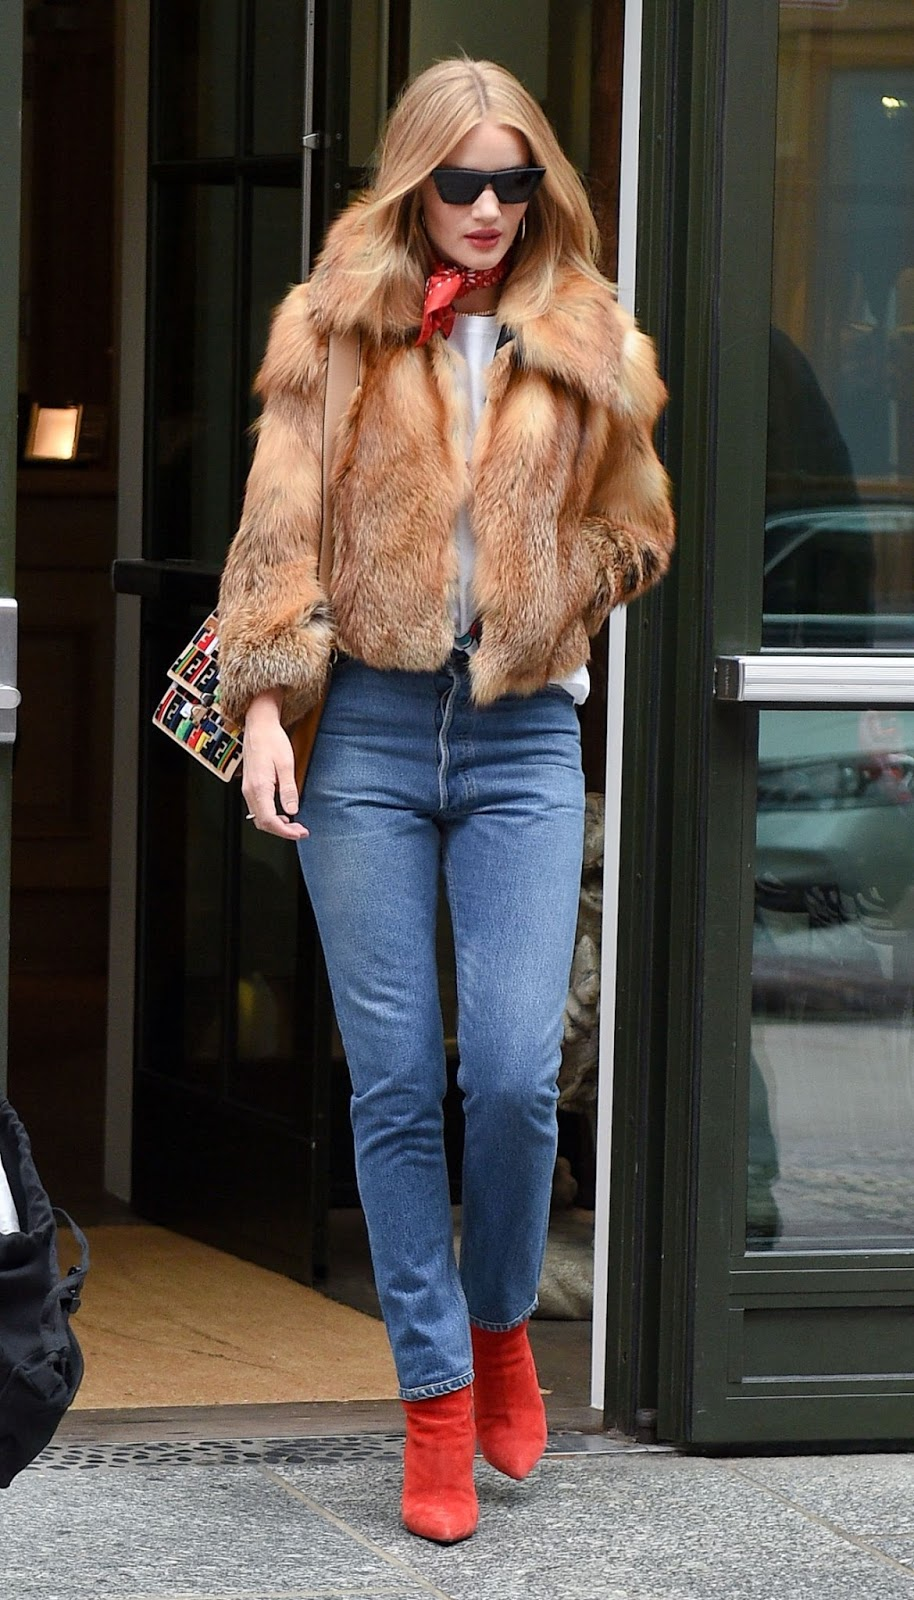 Rosie Huntington-Whiteley street style fashion photo